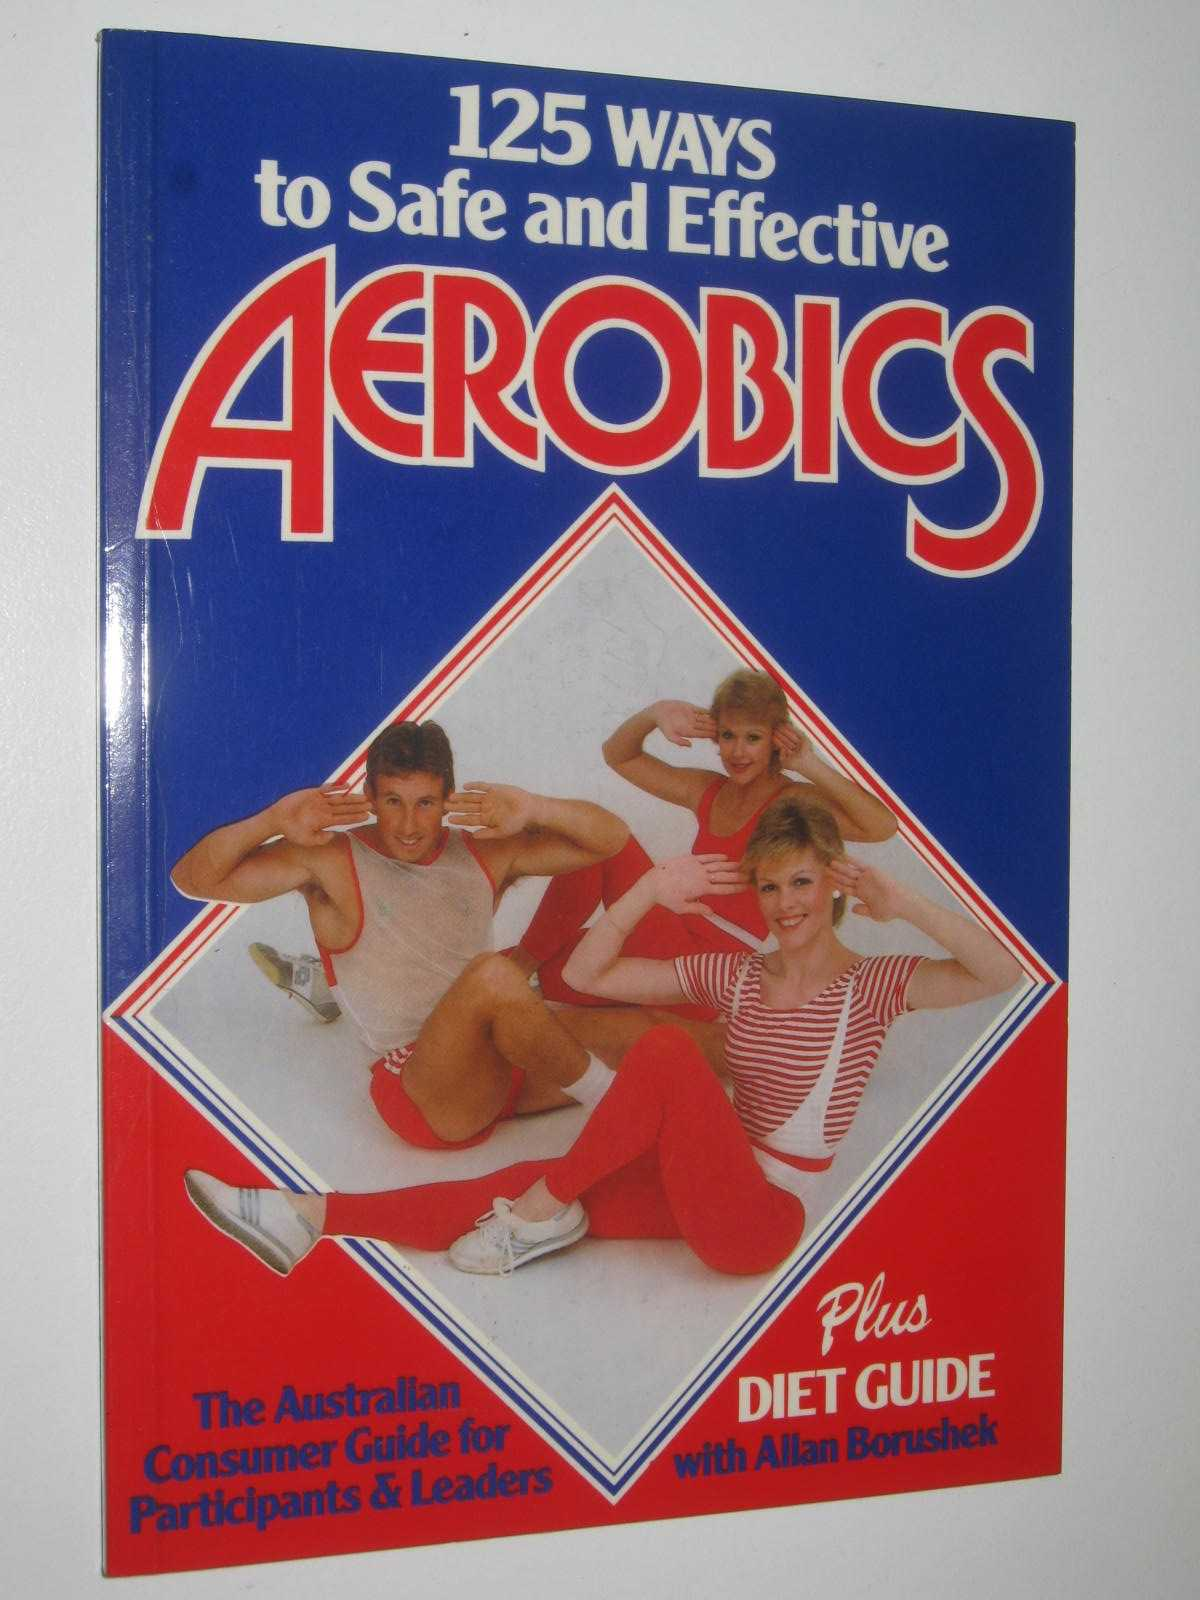 Image for 125 Ways to Safe and Effective Aerobics : The Australian Consumer Guide for Participants and Leaders